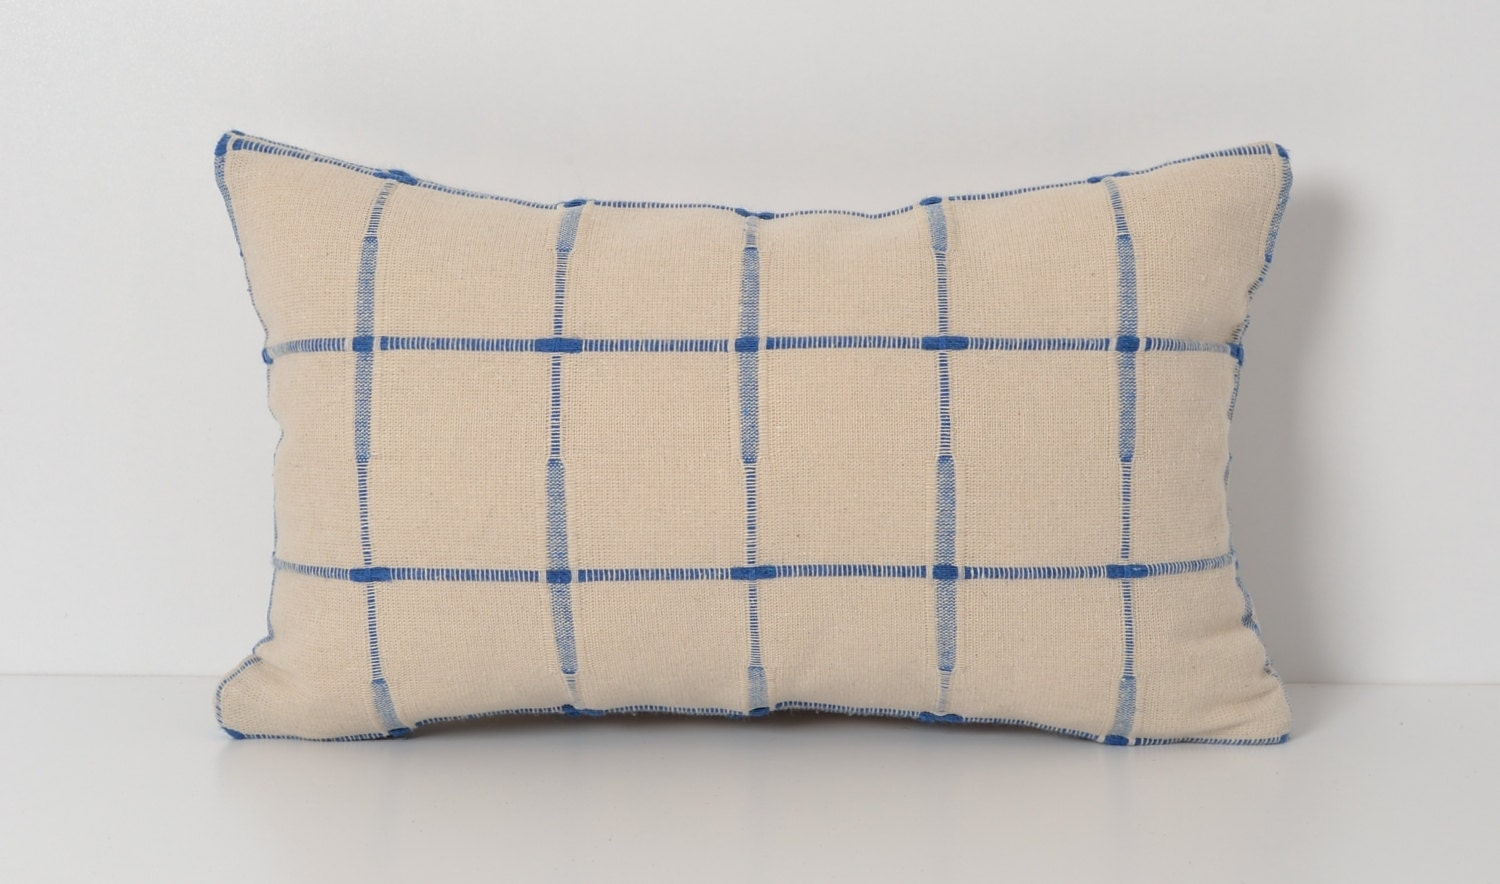 Modern Plaid Pillow : Decorative Modern Plaid Pillow Cover 10x16 inch Ivory by pillowme